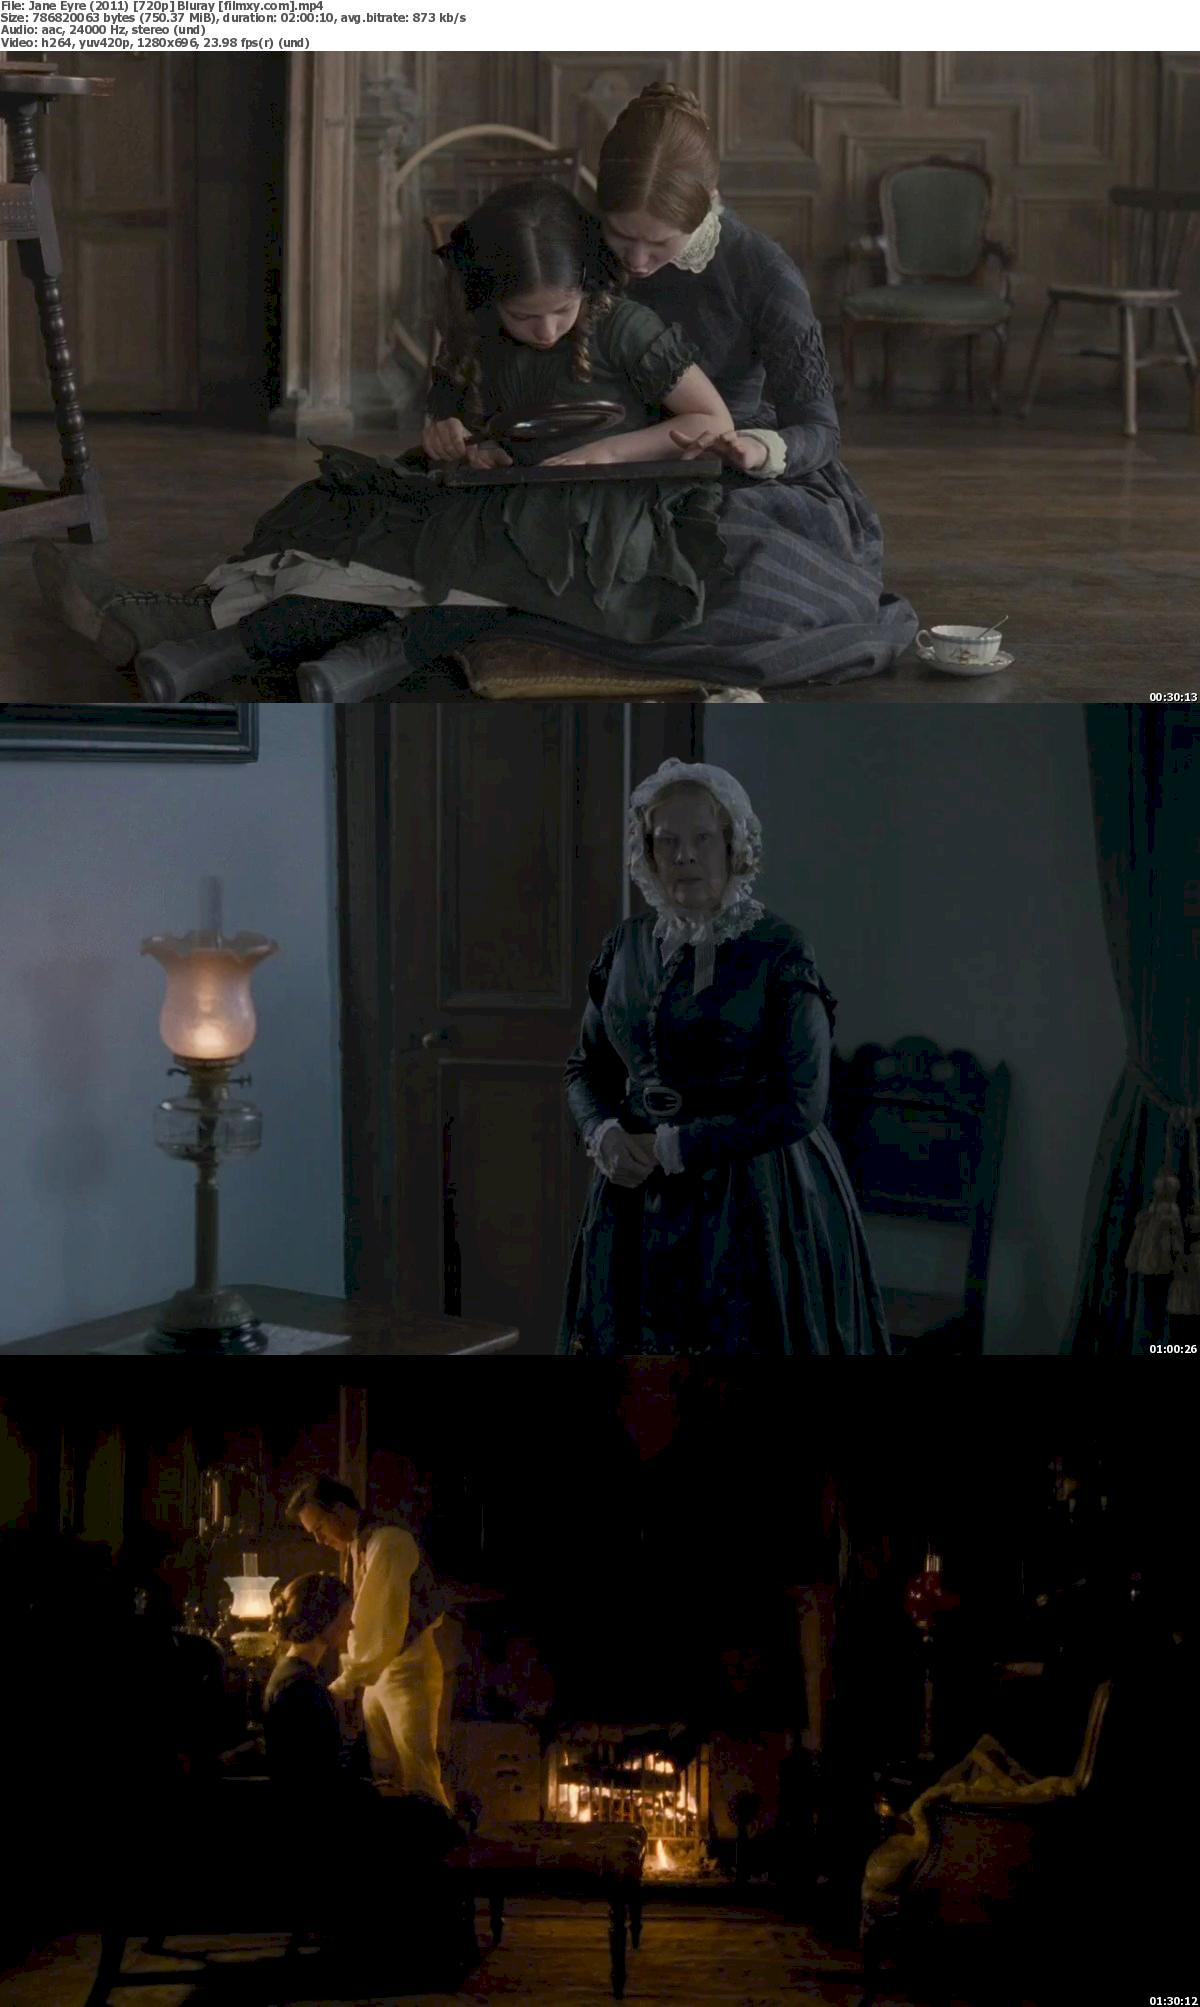 Jane Eyre (2011) 720p Bluray Free Download 720p Screenshot